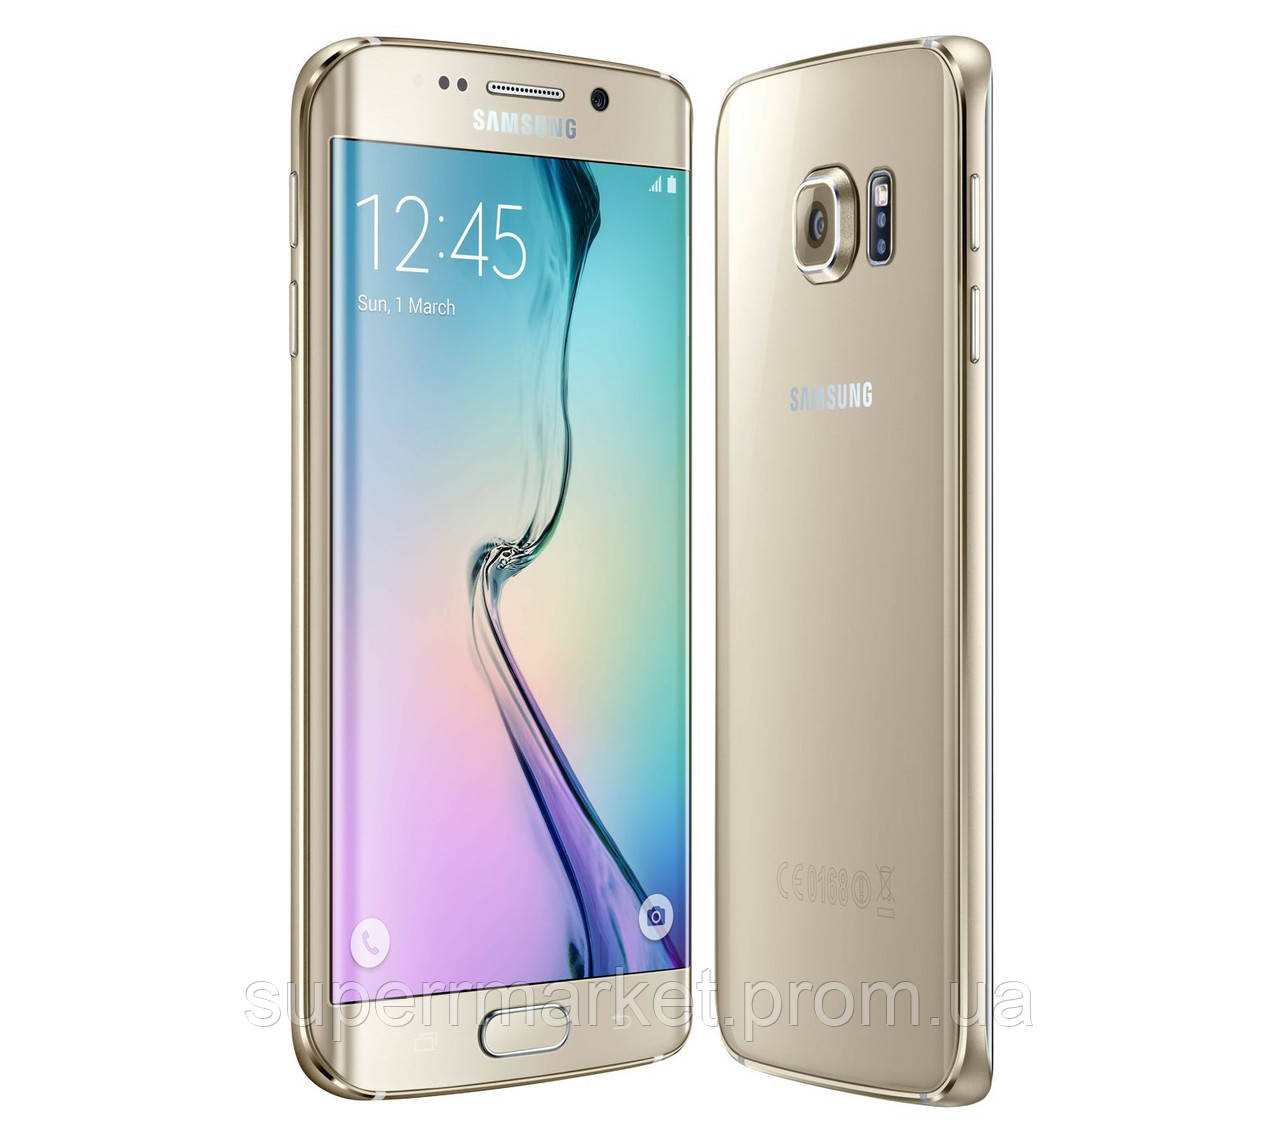 Смартфон Samsung G928F Galaxy S6 Edge+ 32GB Gold Platinum